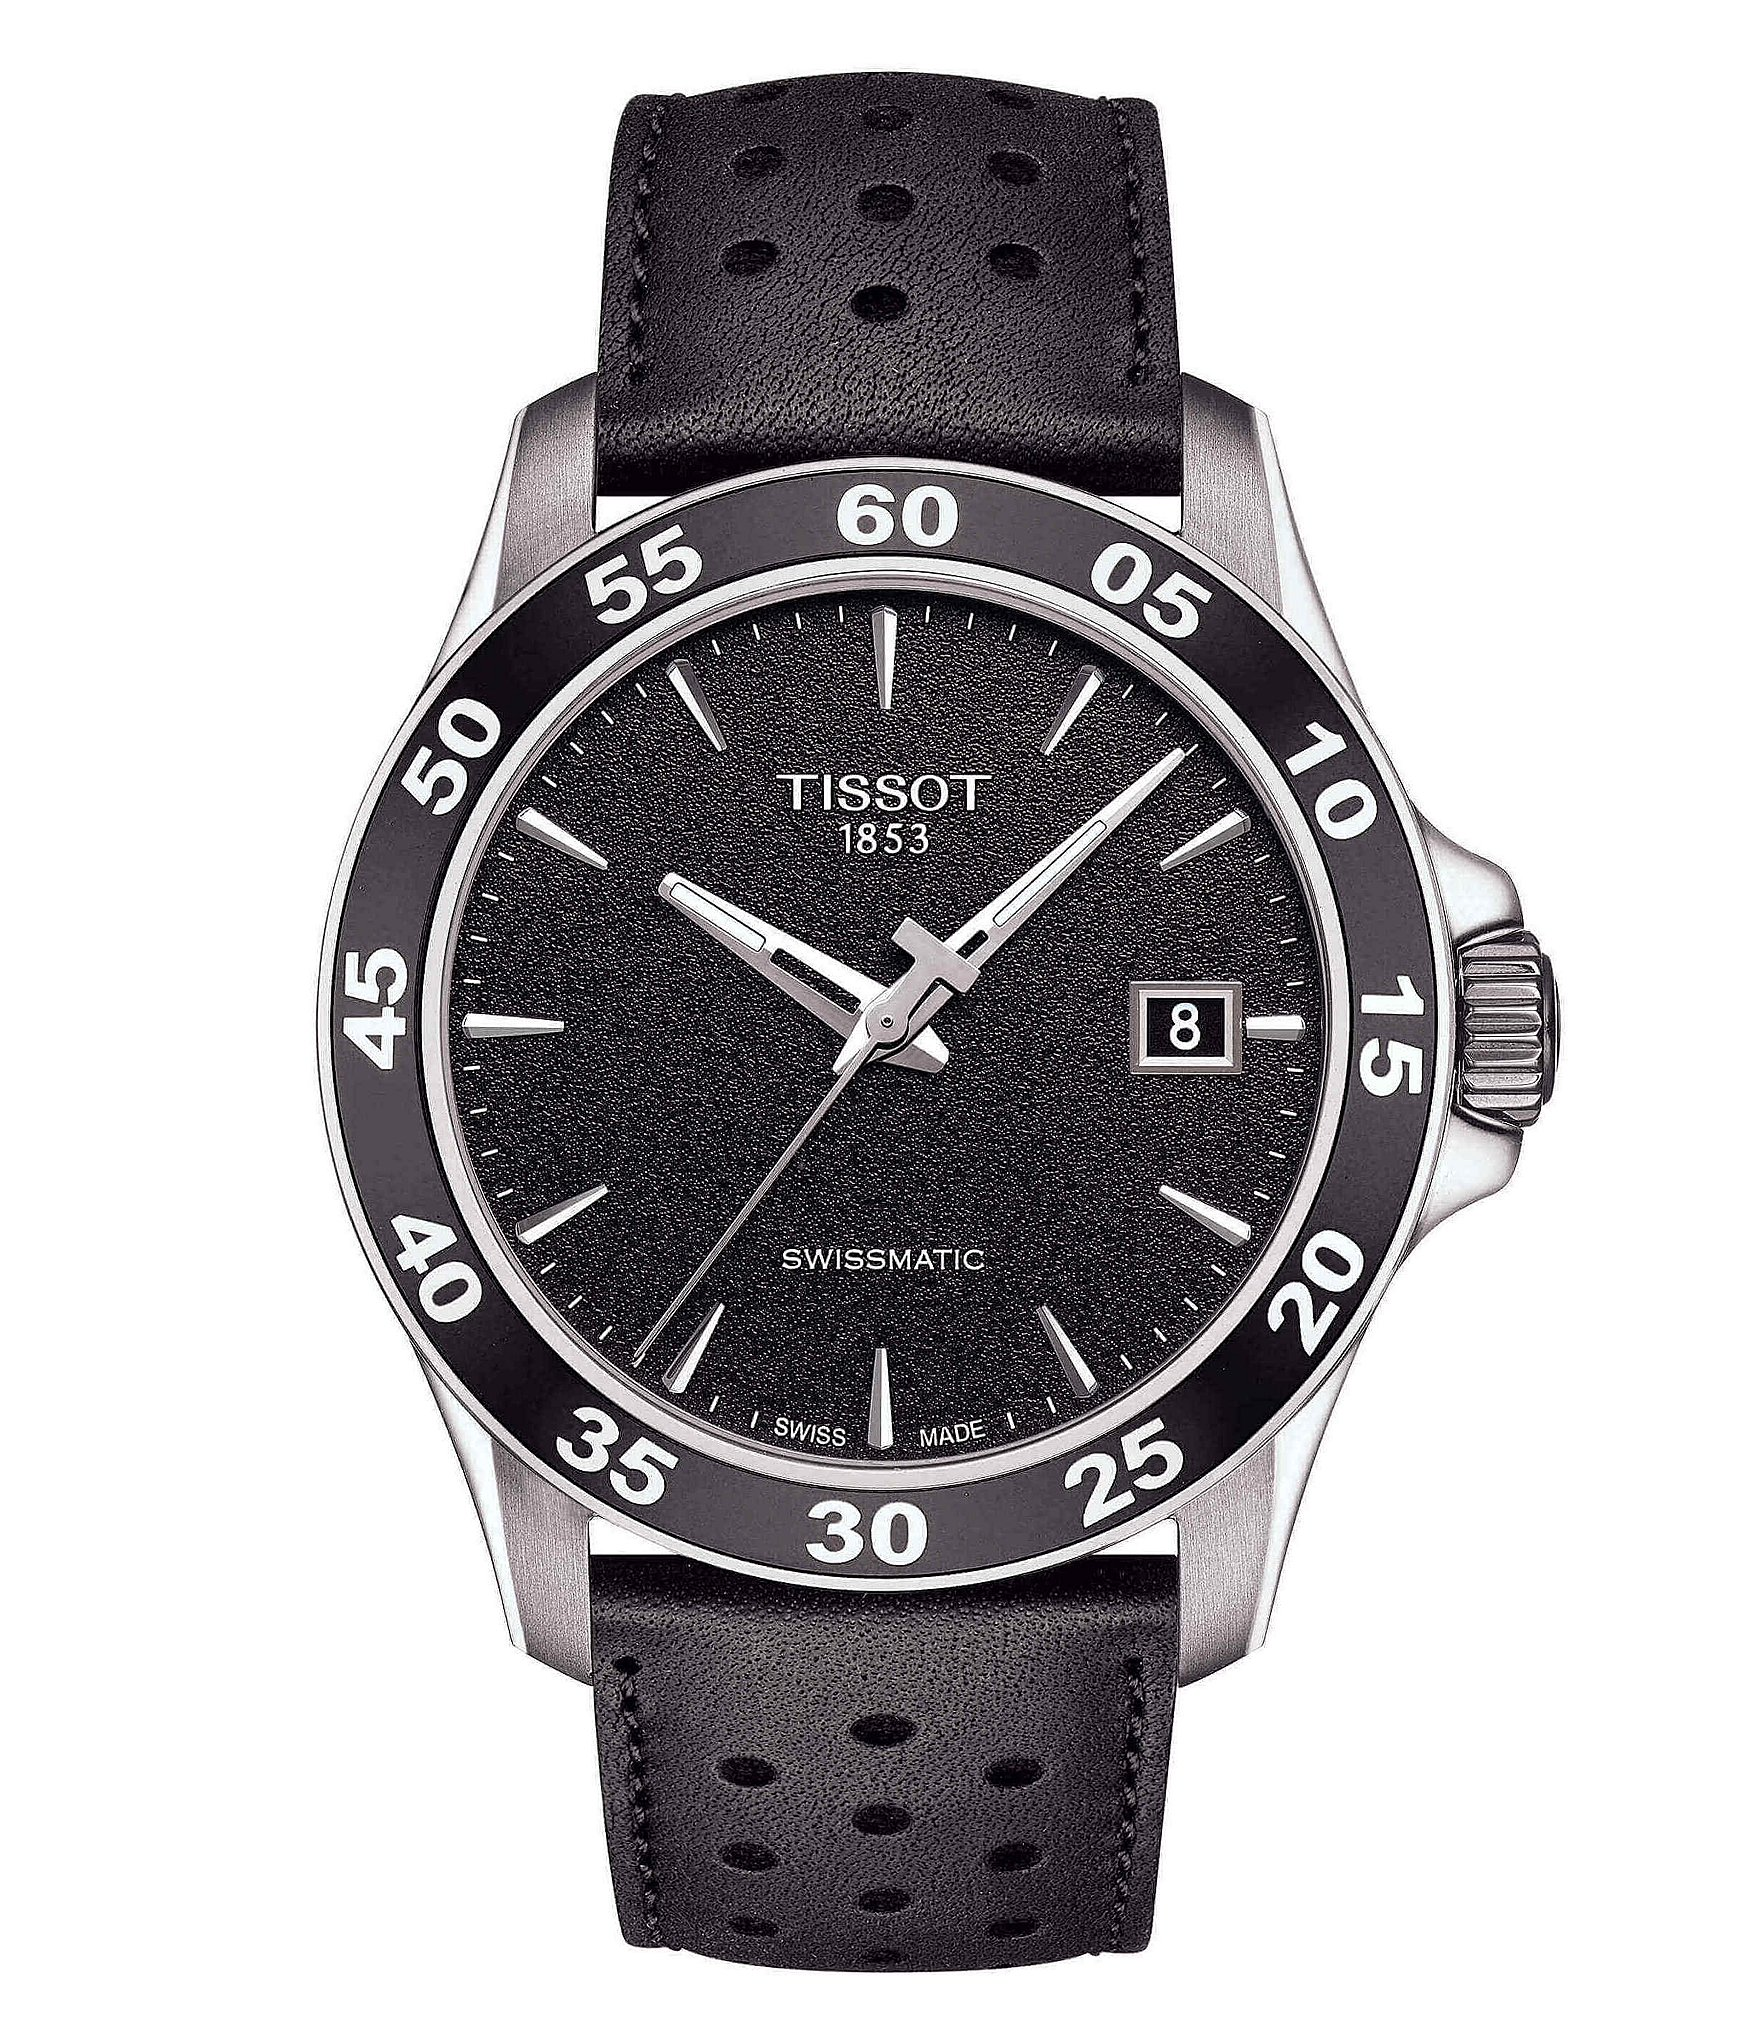 Tissot v8 men 39 s black leather strap mechanical automatic watch dillard 39 s for Celebrity tissot watches